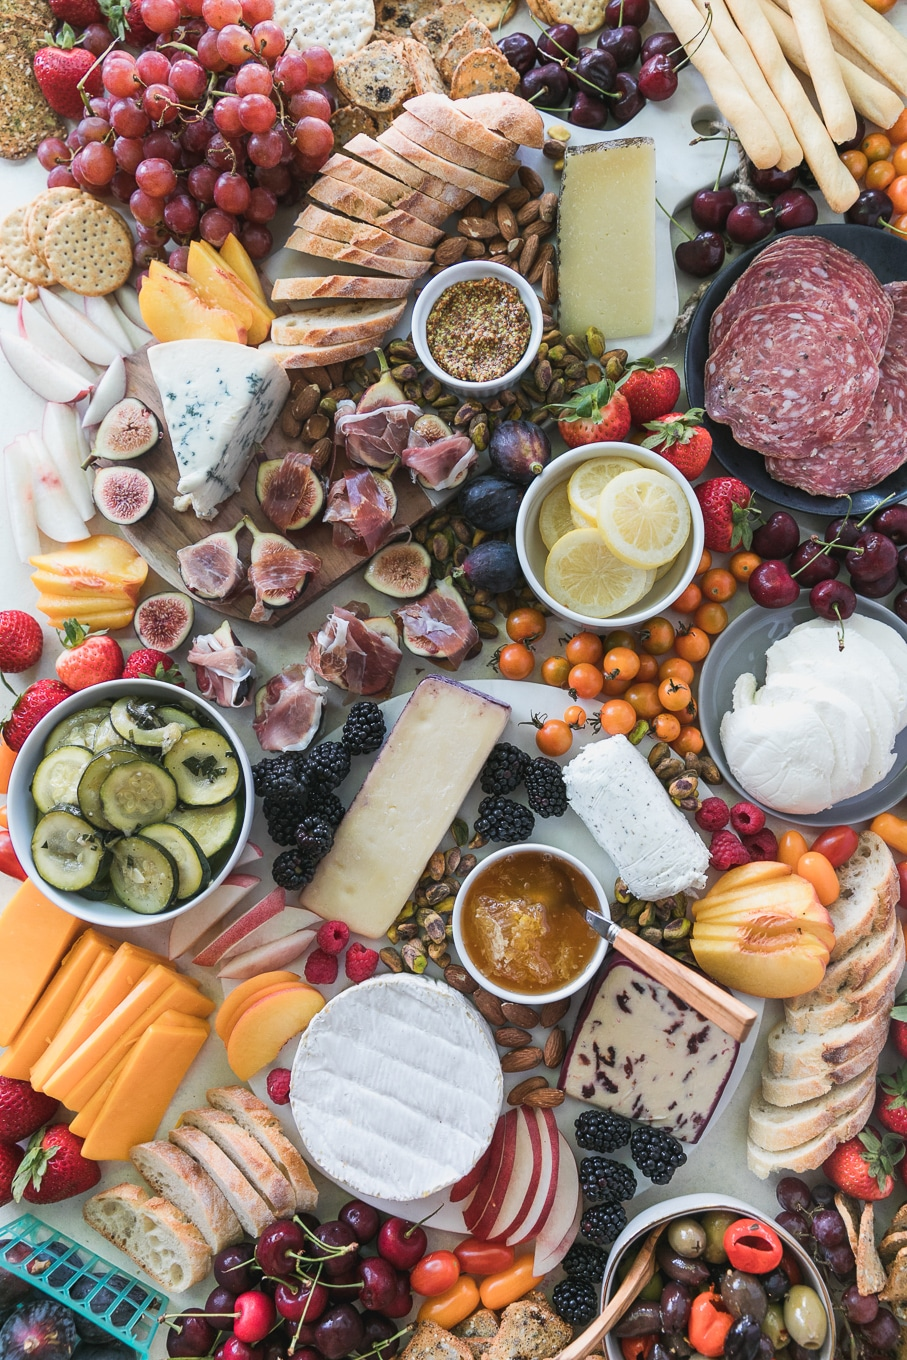 Overhead shot of a colorful cheeseboard filled with berries, prosciutto wrapped figs, marinated zucchini, nuts, berries, crackers, baguette, peaches, nectarines, grapes, honey, and preserved lemons